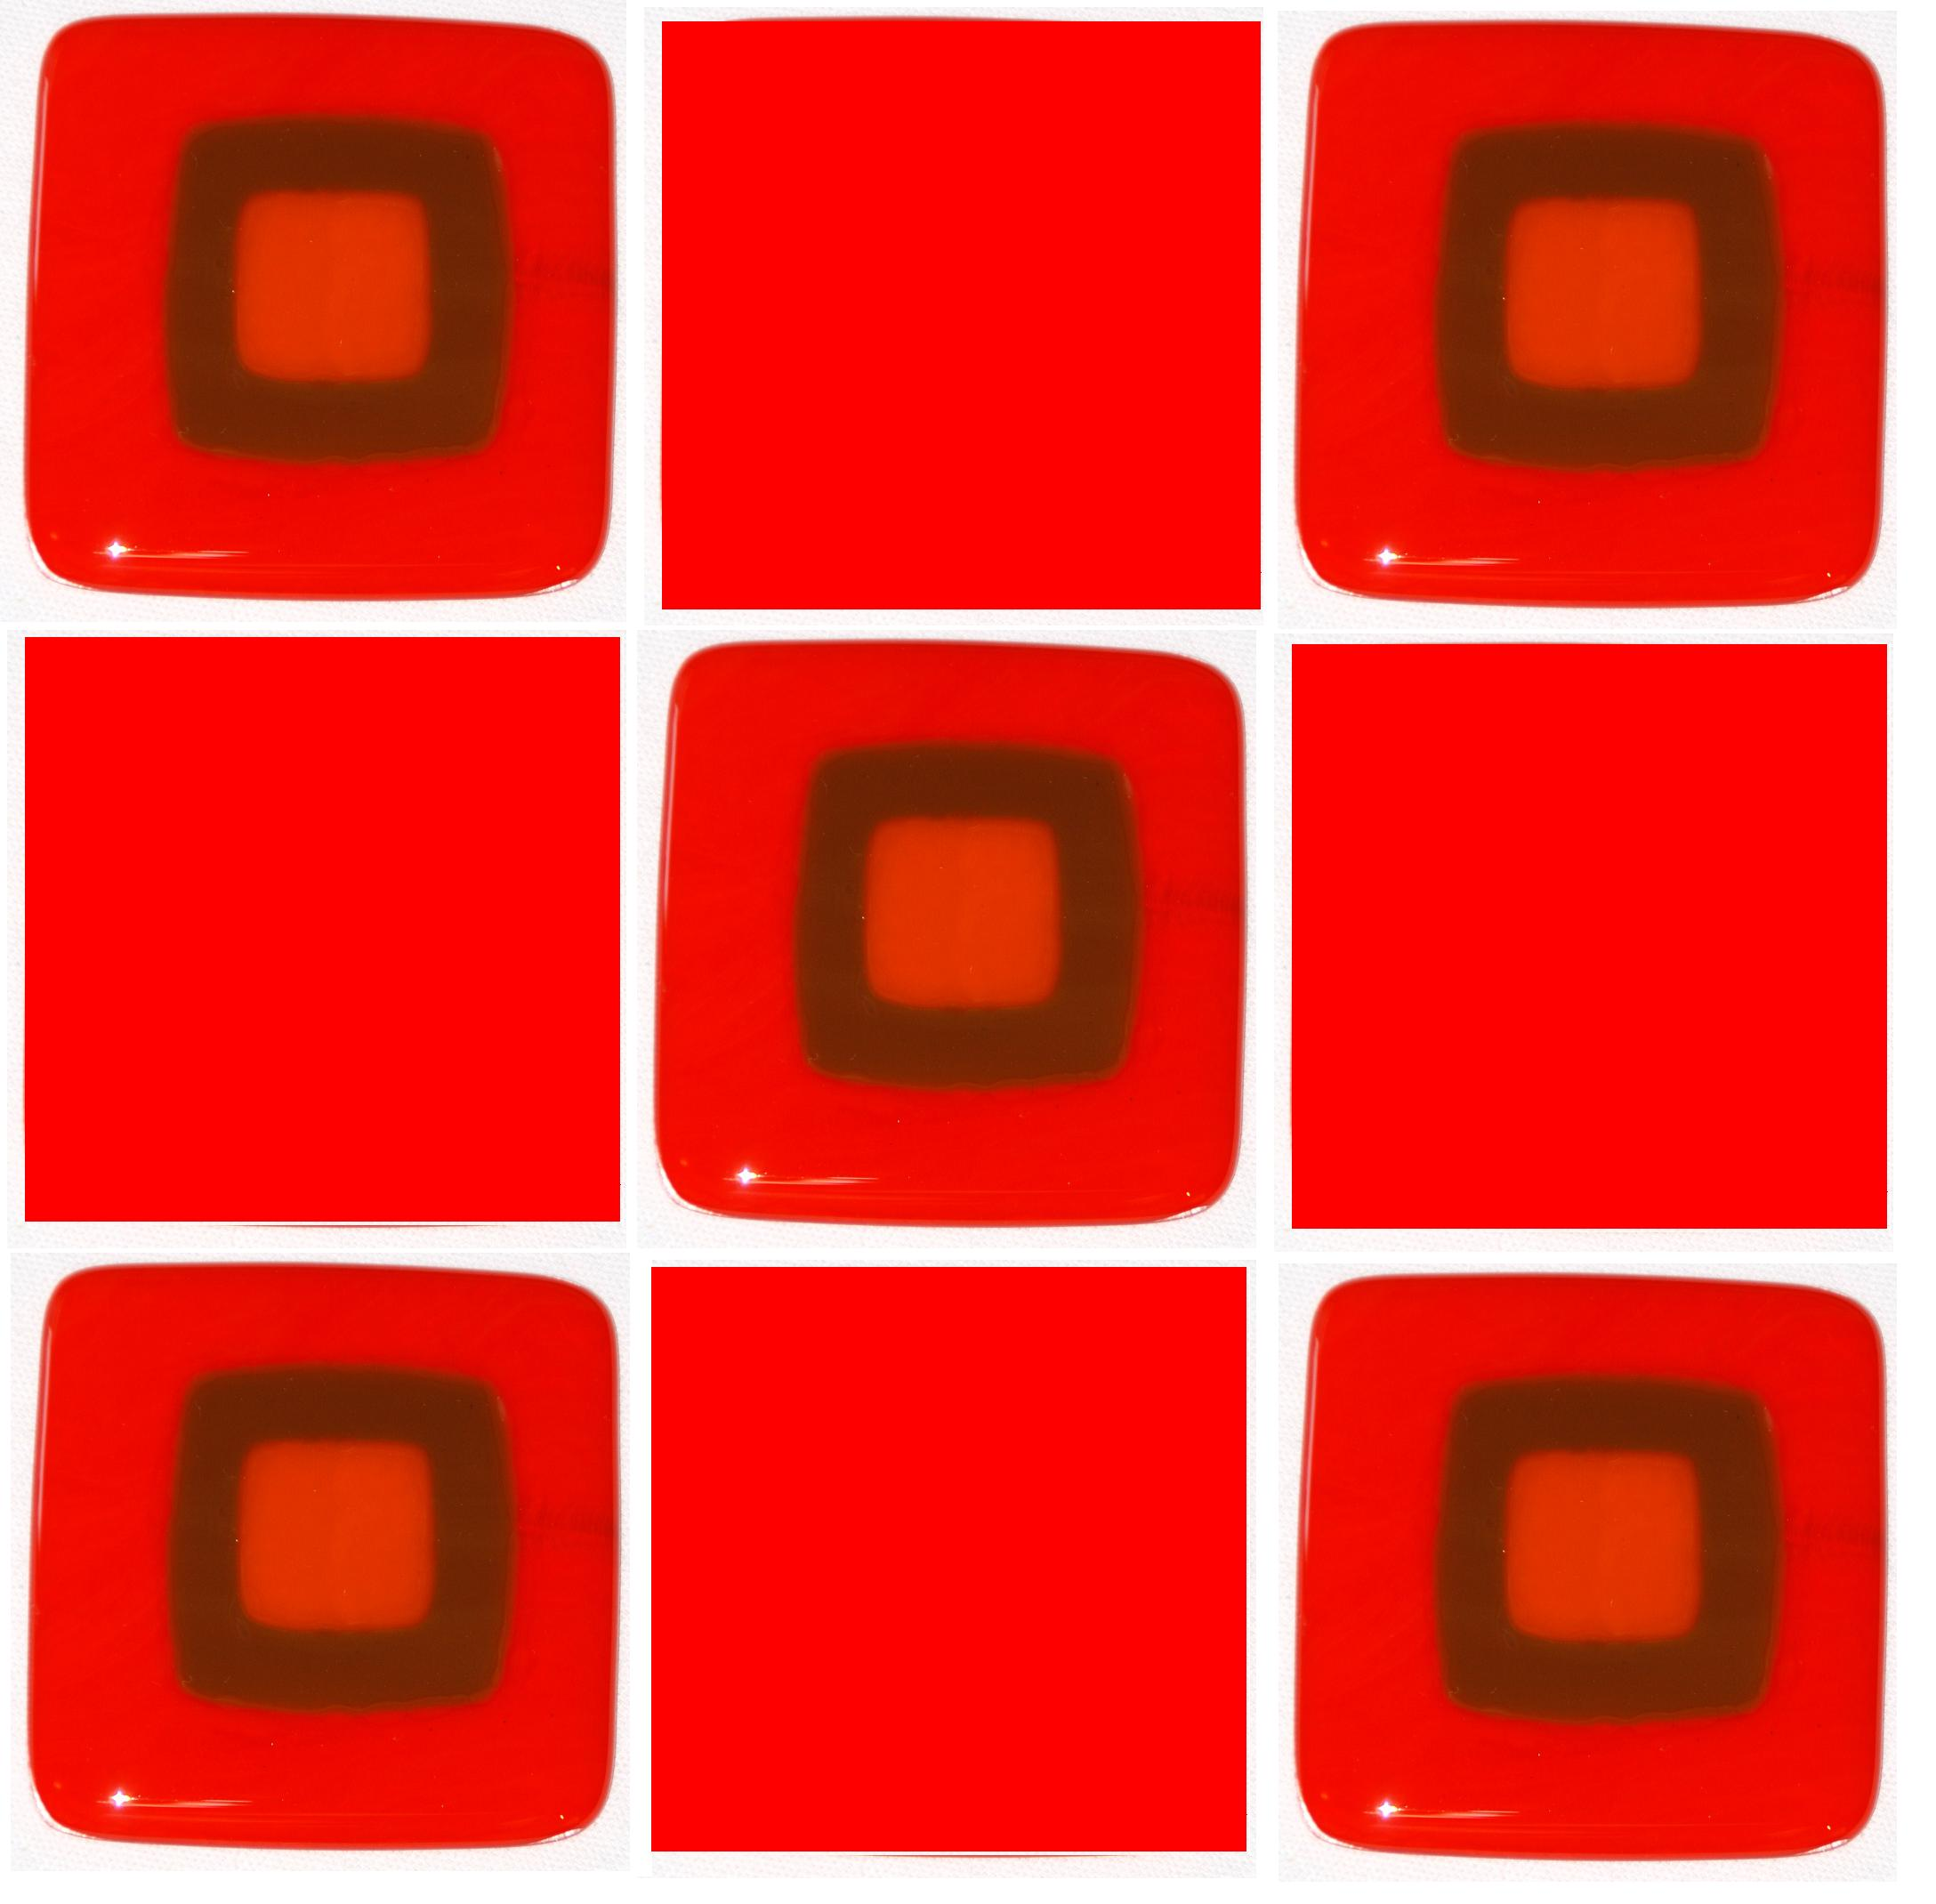 pimiento on white tiles with red.jpg